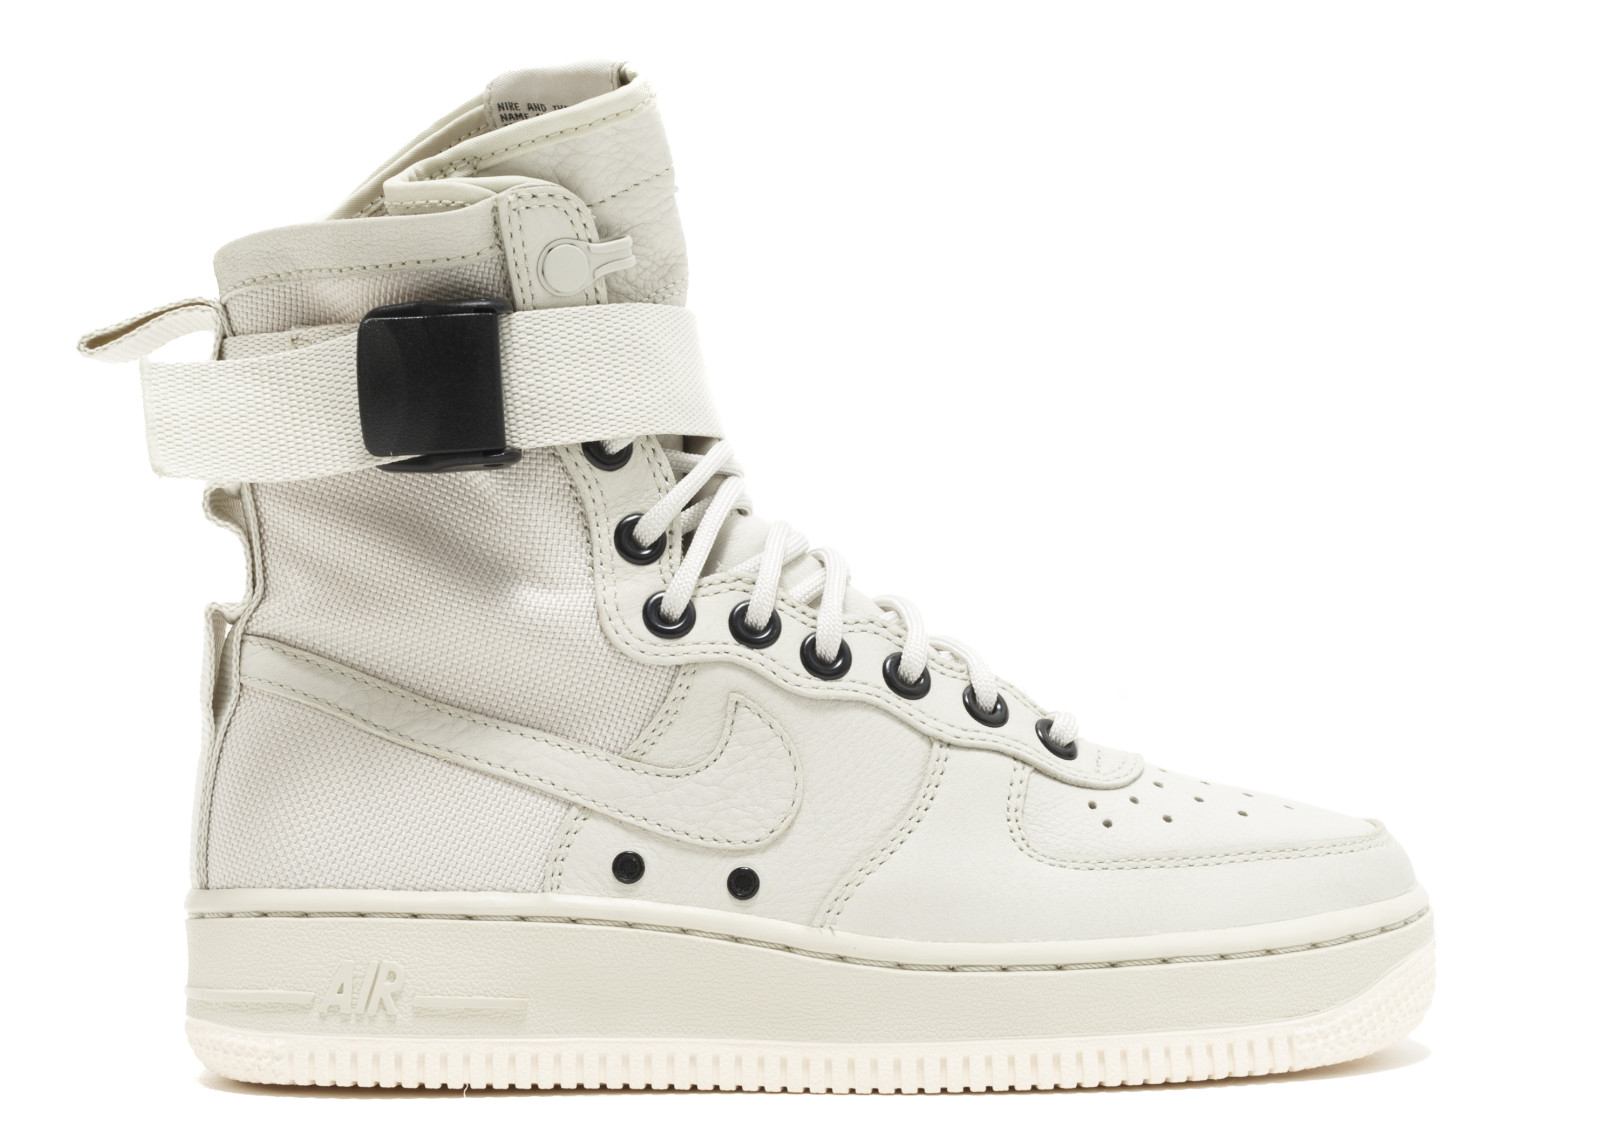 nike wmns sf af1 special field air force 1 nz